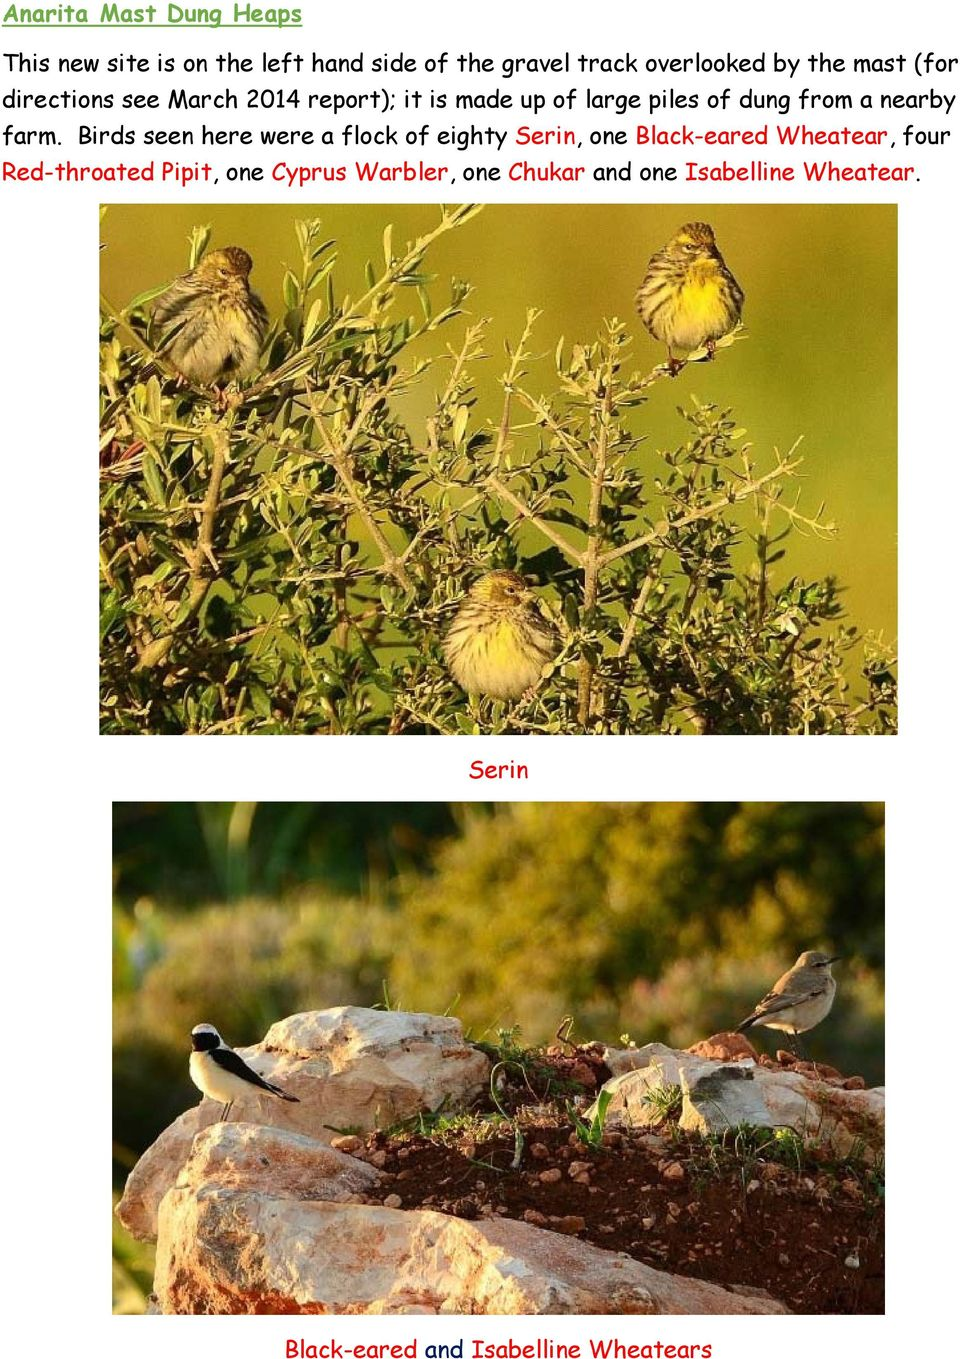 Birds seen here were a flock of eighty Serin, one Black-eared Wheatear, four Red-throated Pipit, one